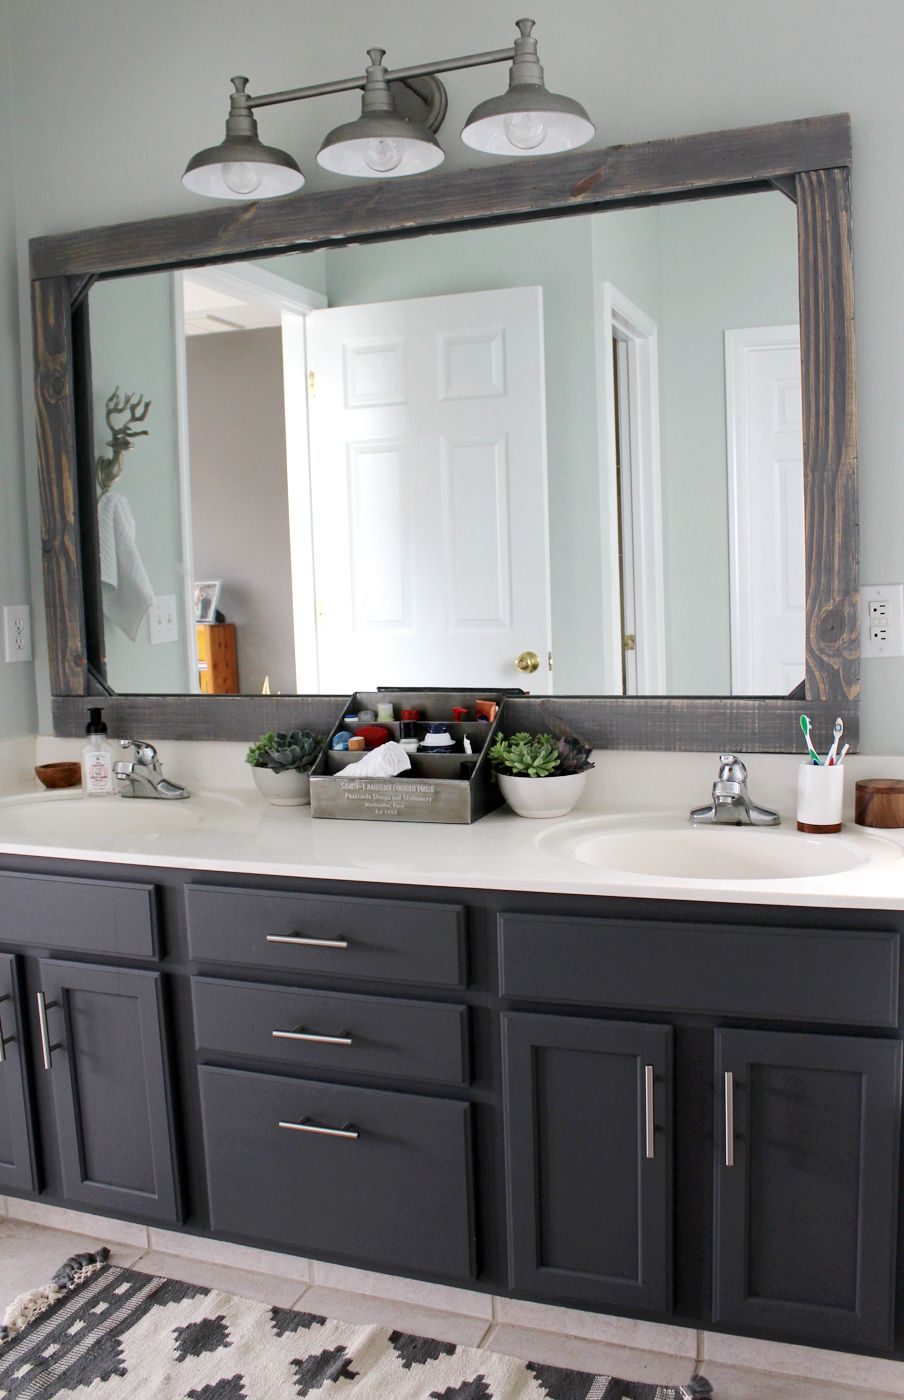 How To Frame A Mirror With Wood Tag Tibby Design Bathroom Remodel Master Master Bathroom Makeover Farmhouse Master Bathroom